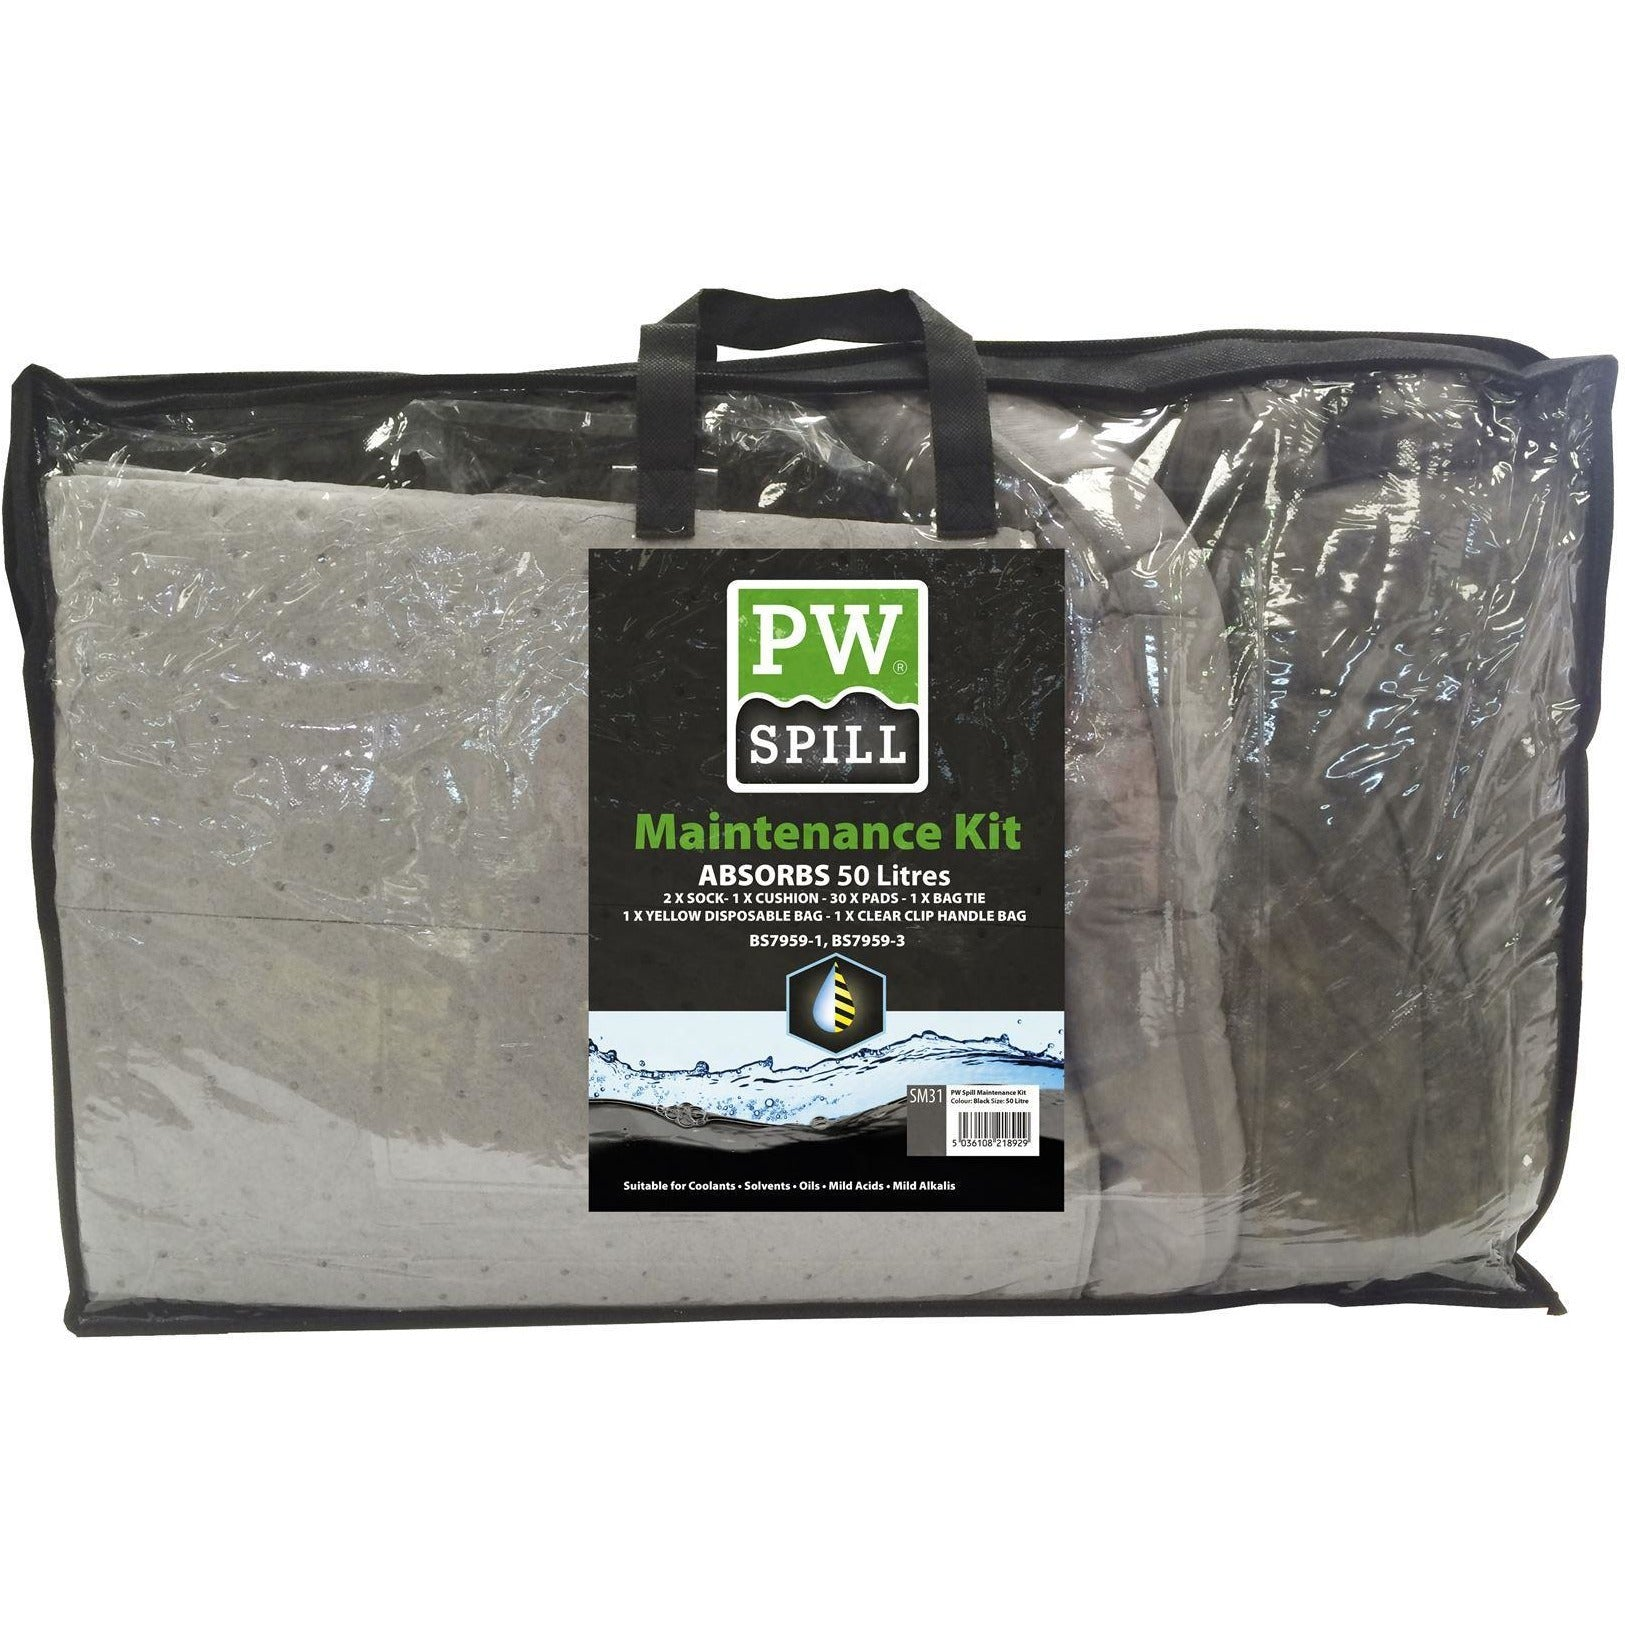 Portwest PW Spill 50 Litre Maintenance Kit  SM31